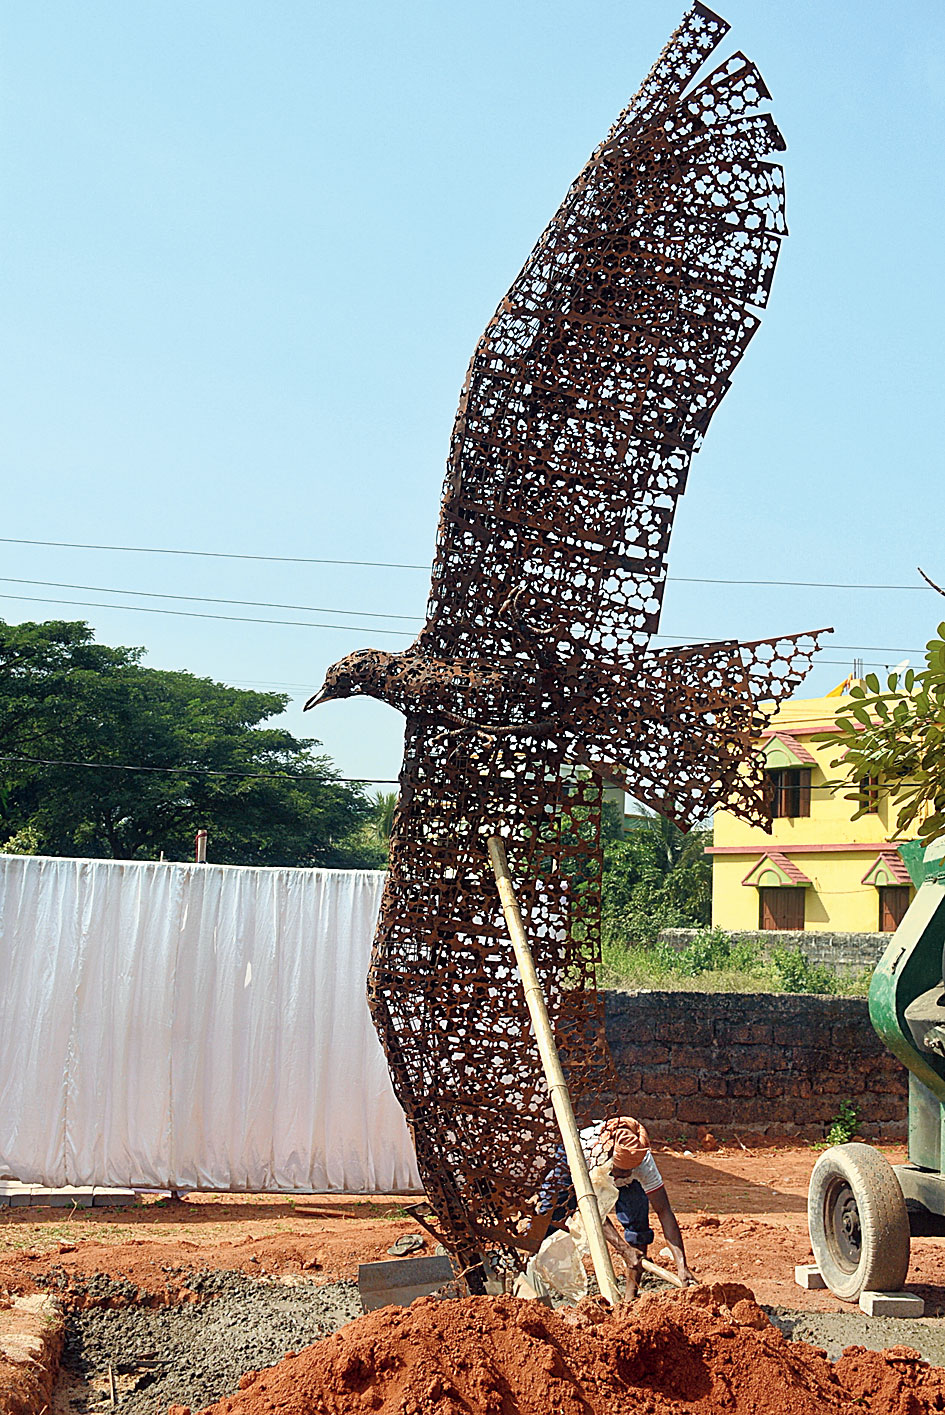 An art installation by a foreign sculptor in Bhubaneswar.